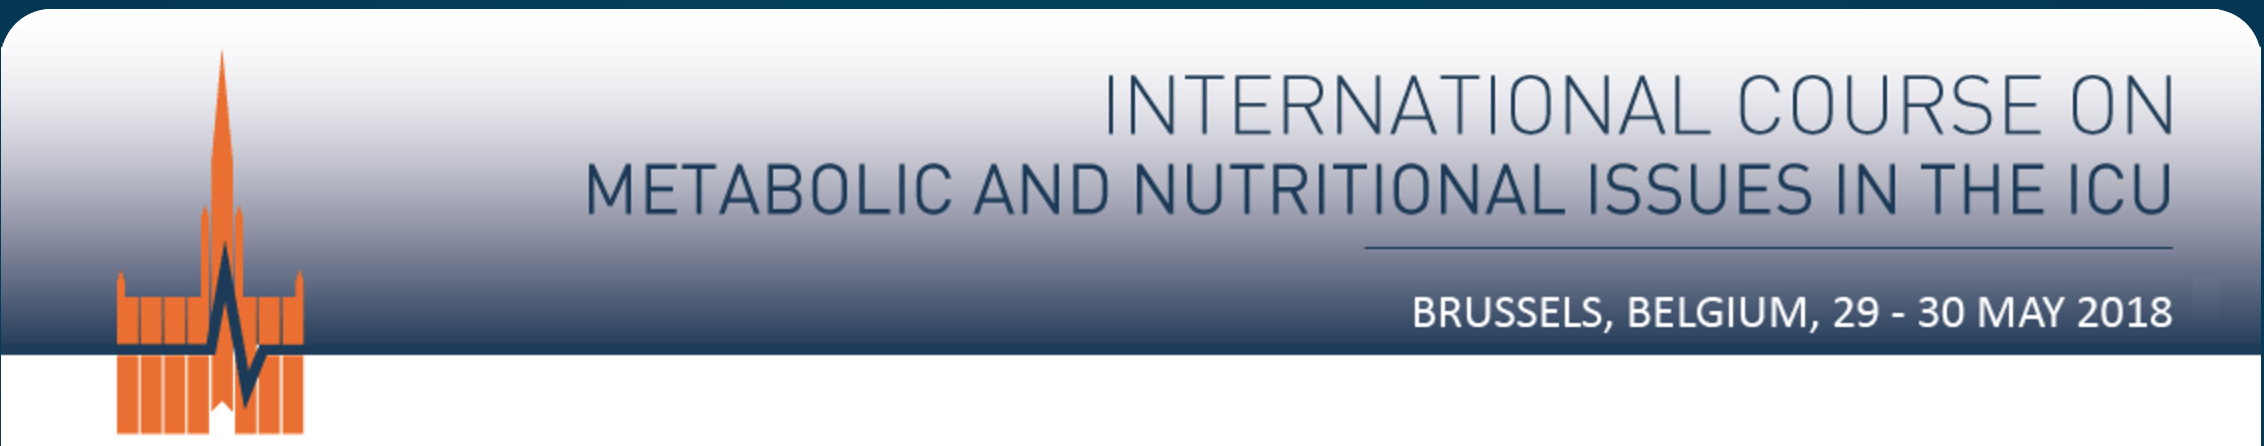 Nutritional course 2018 brussel